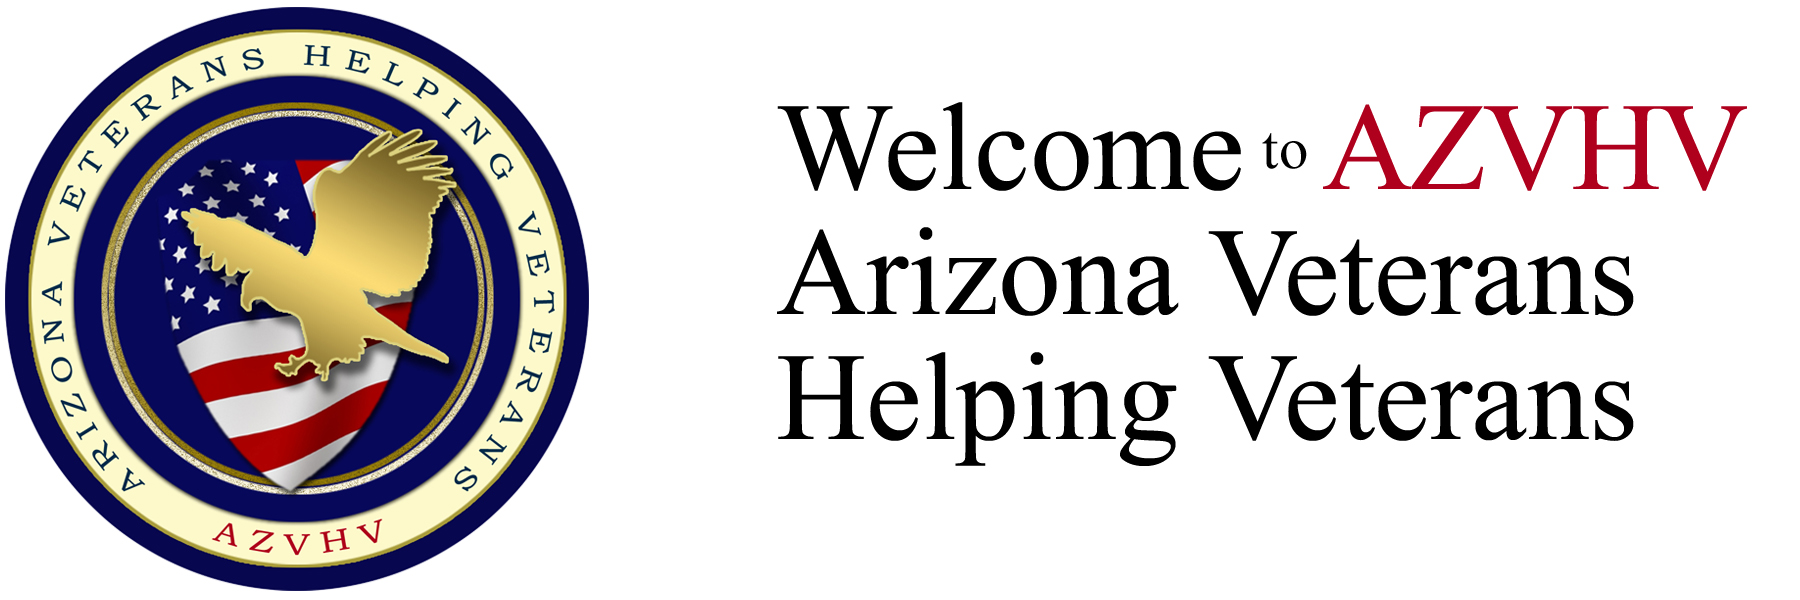 AZVHV Arizona Veterans Helping Veterans - Discounts - Home Buyer's FORUM - Bill Salvatore, Arizona Elite Properties 602-999-0952